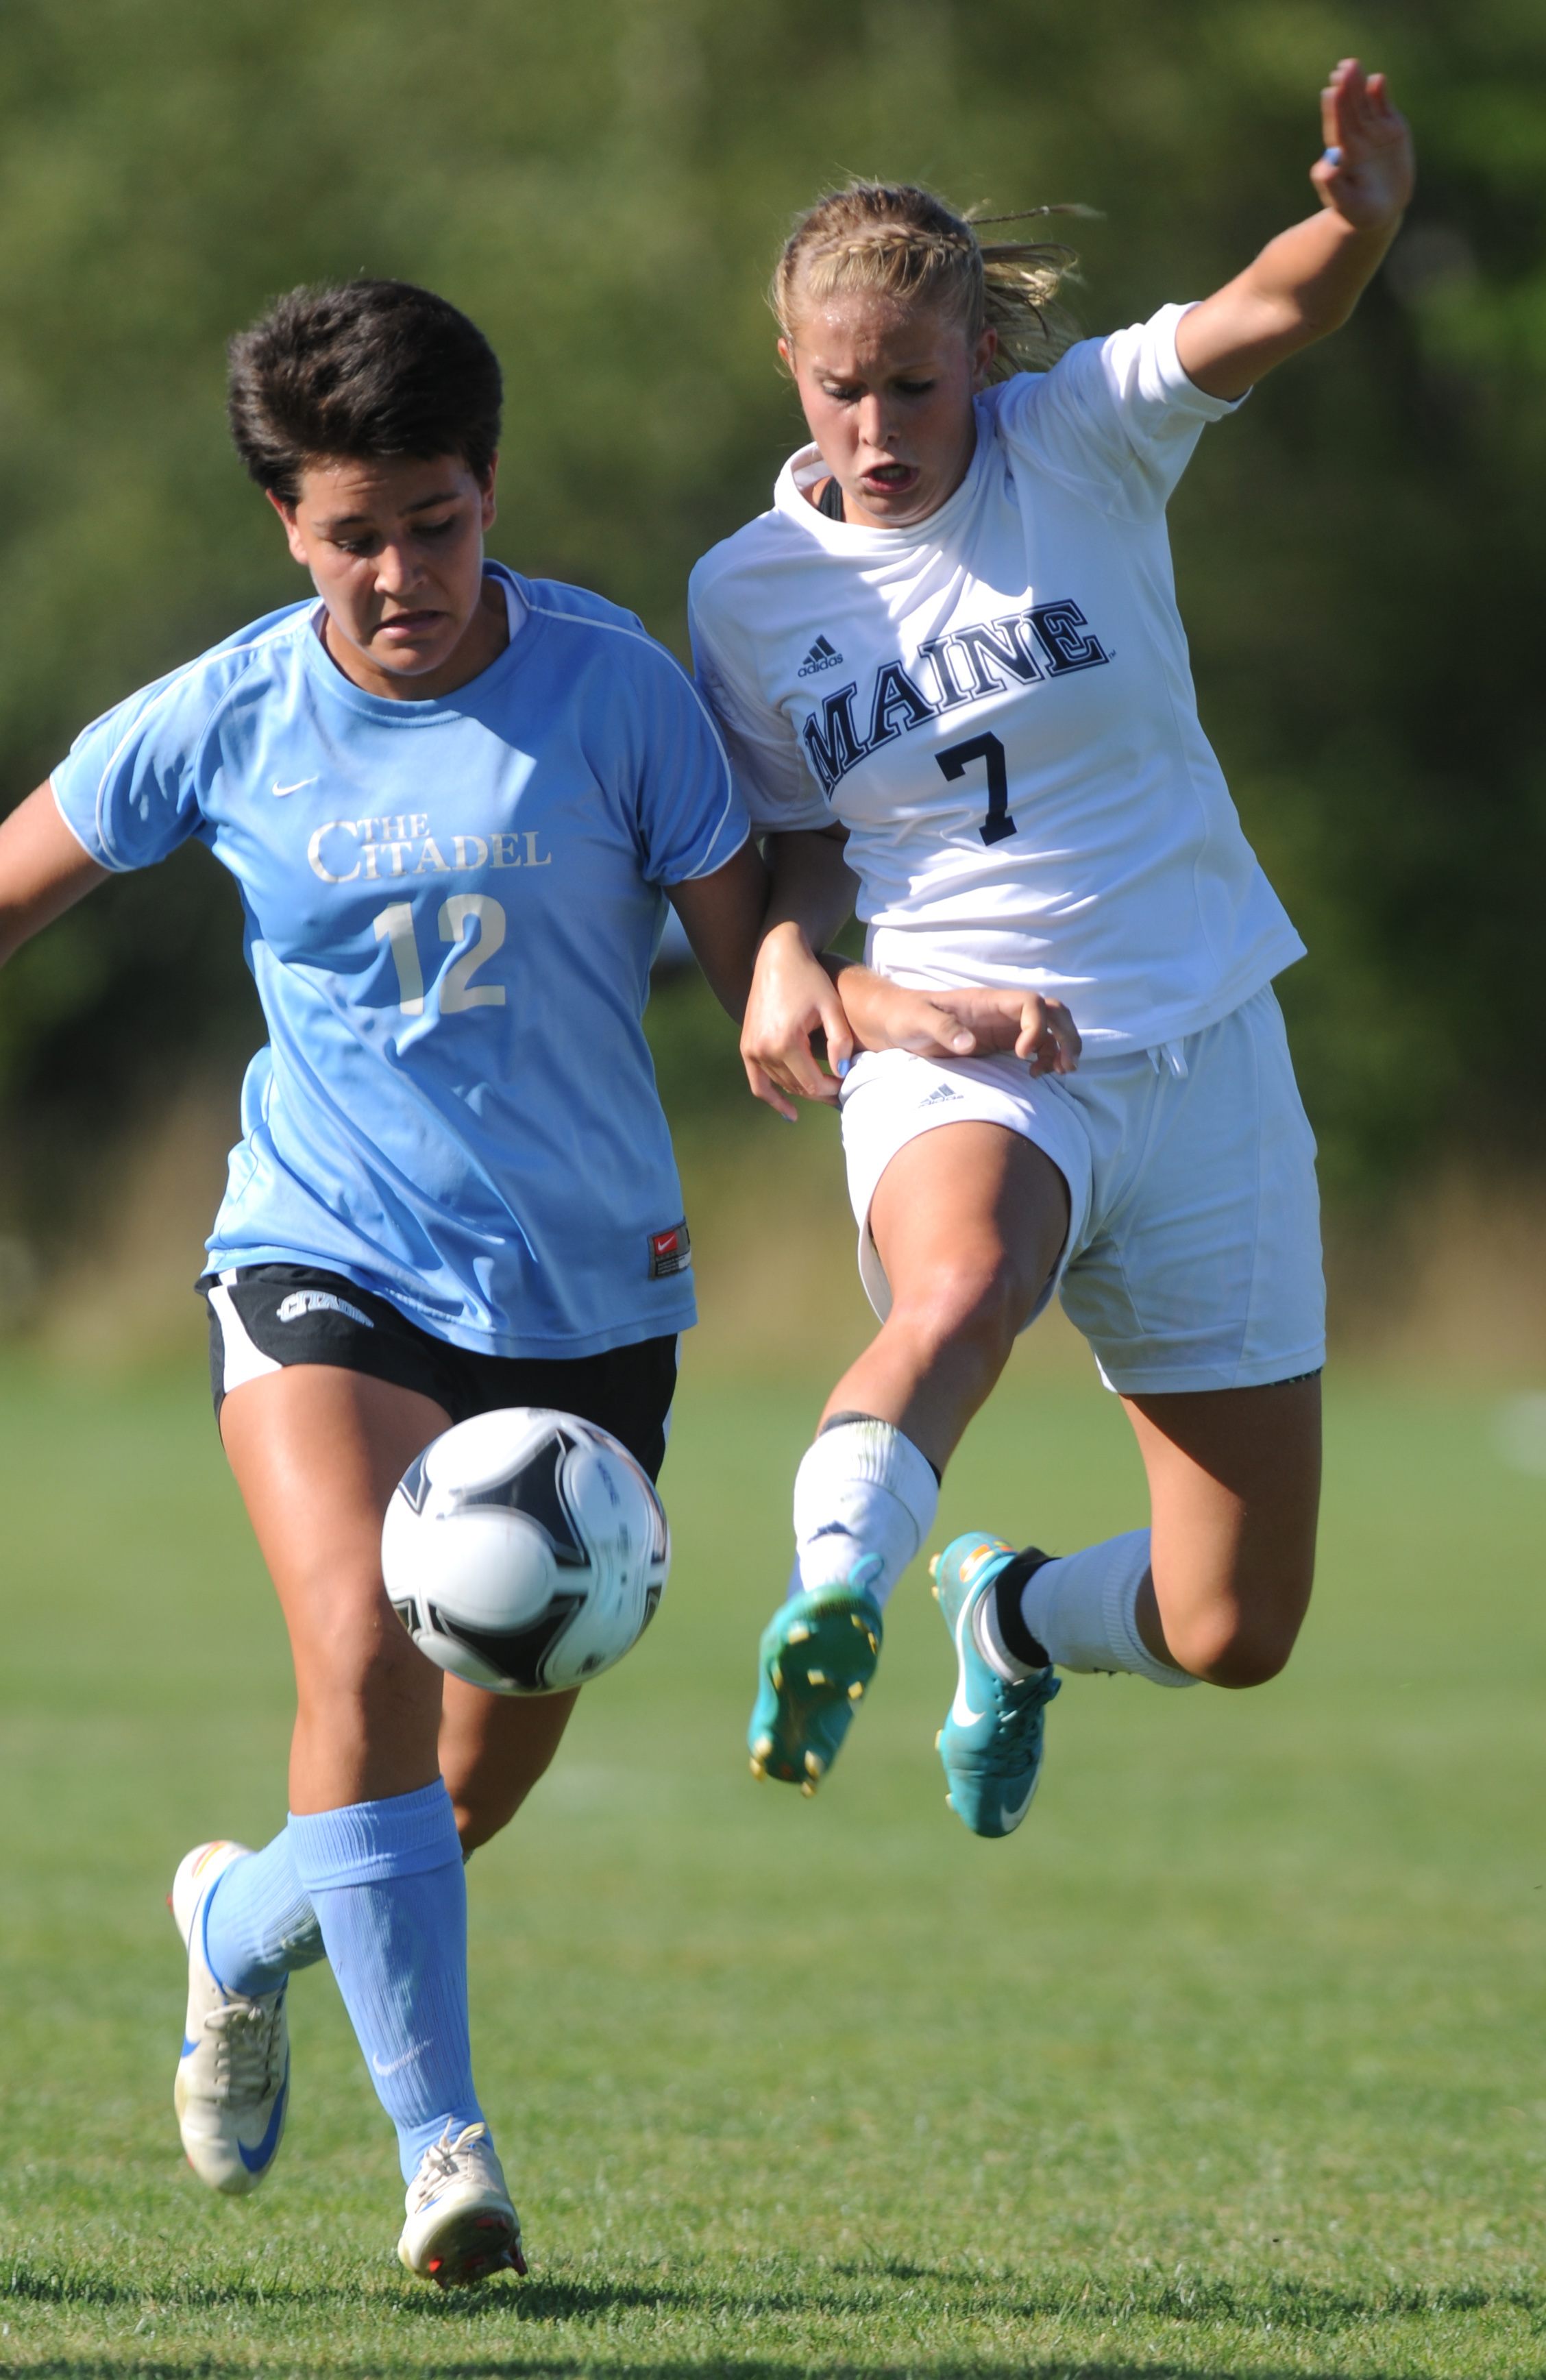 UMaine's Jordan Pellerin and Citadel's Kimberly Maldonado fight for control of the ball during first-half action at Orono on Friday, Aug. 24, 2012.